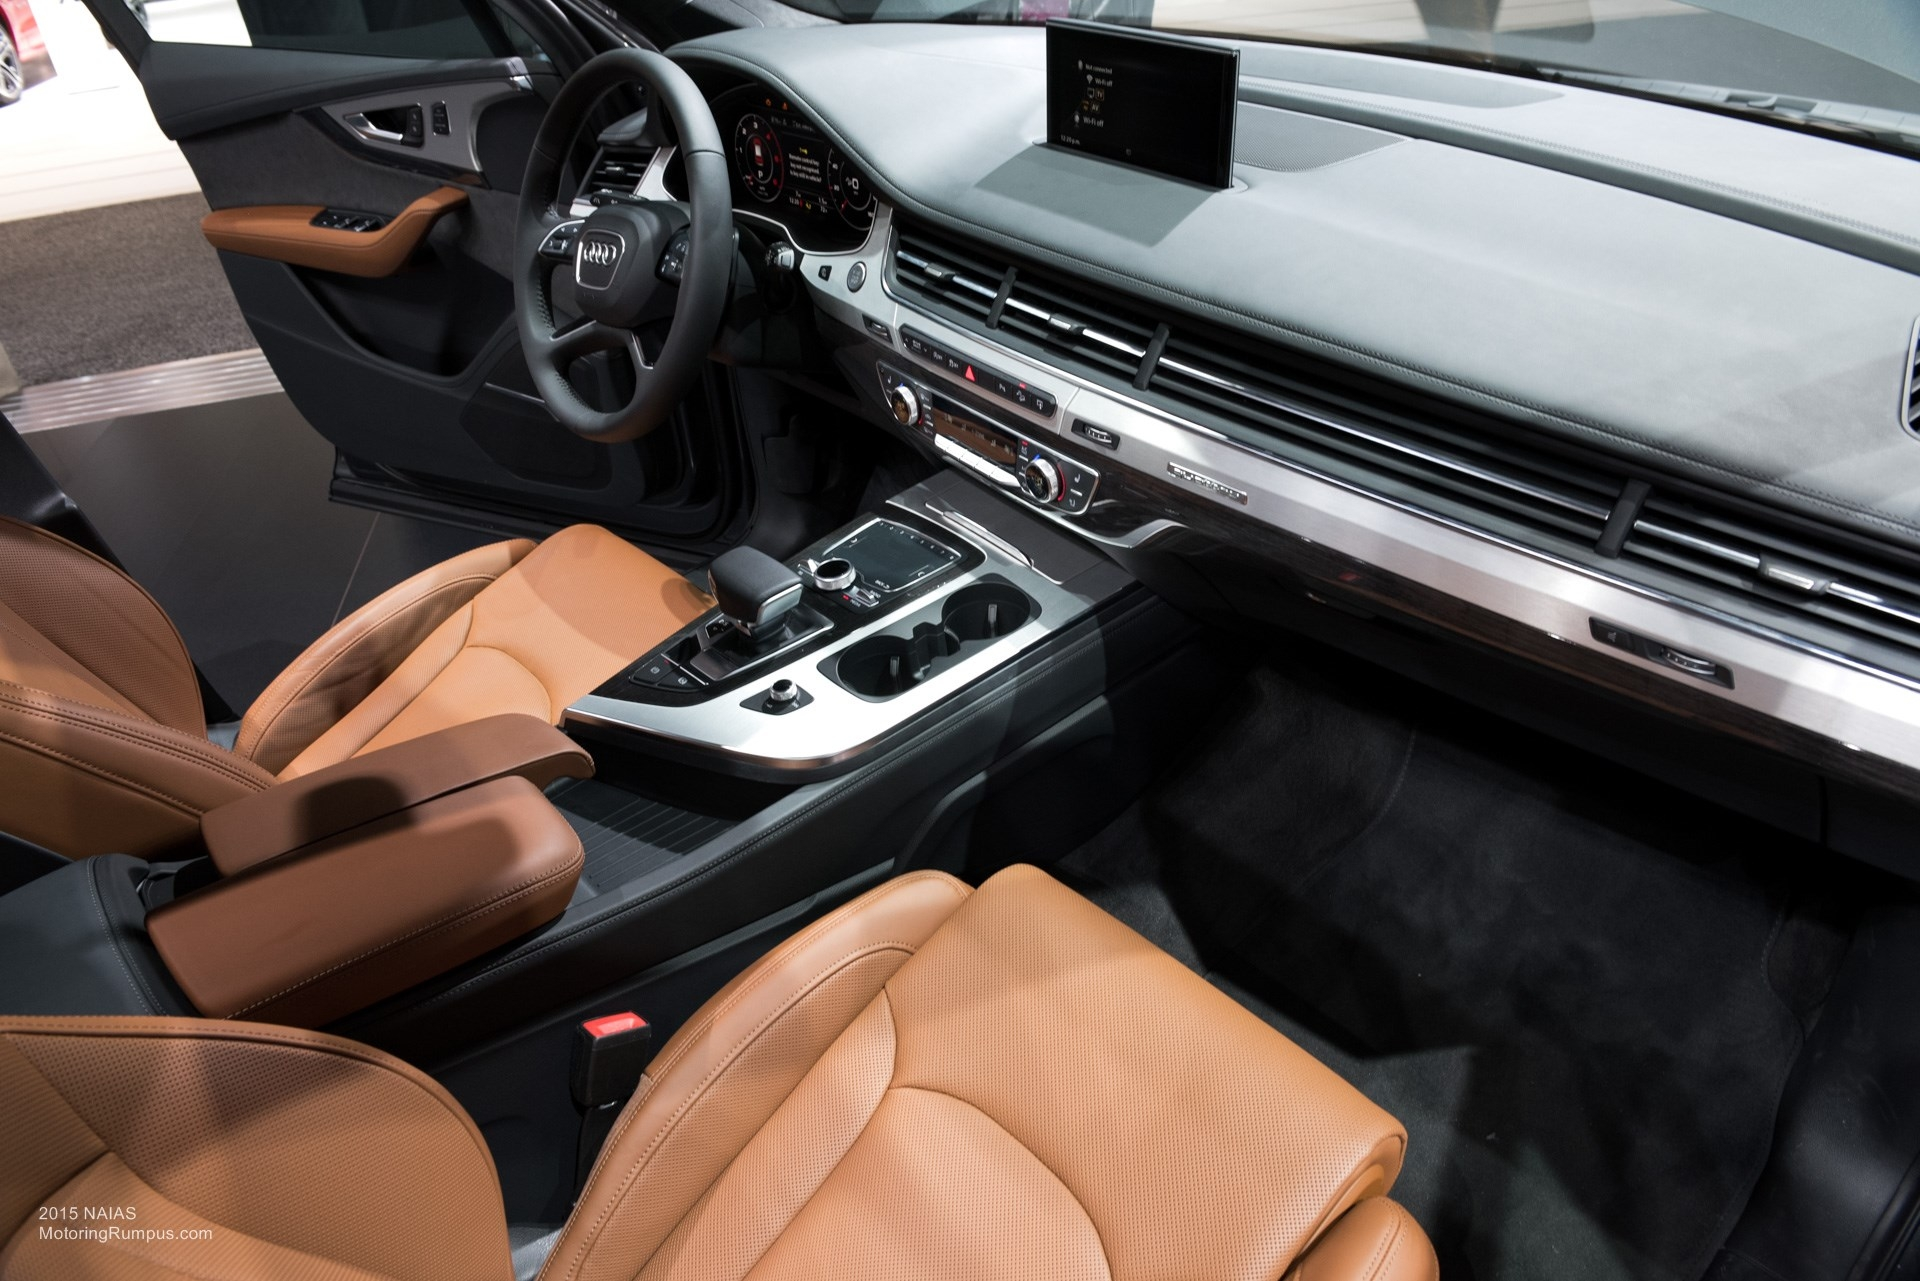 amazing-design-of-the-brown-seats-ideas-with-black-dash-as-the-audi-q7-2015-interior-ideas